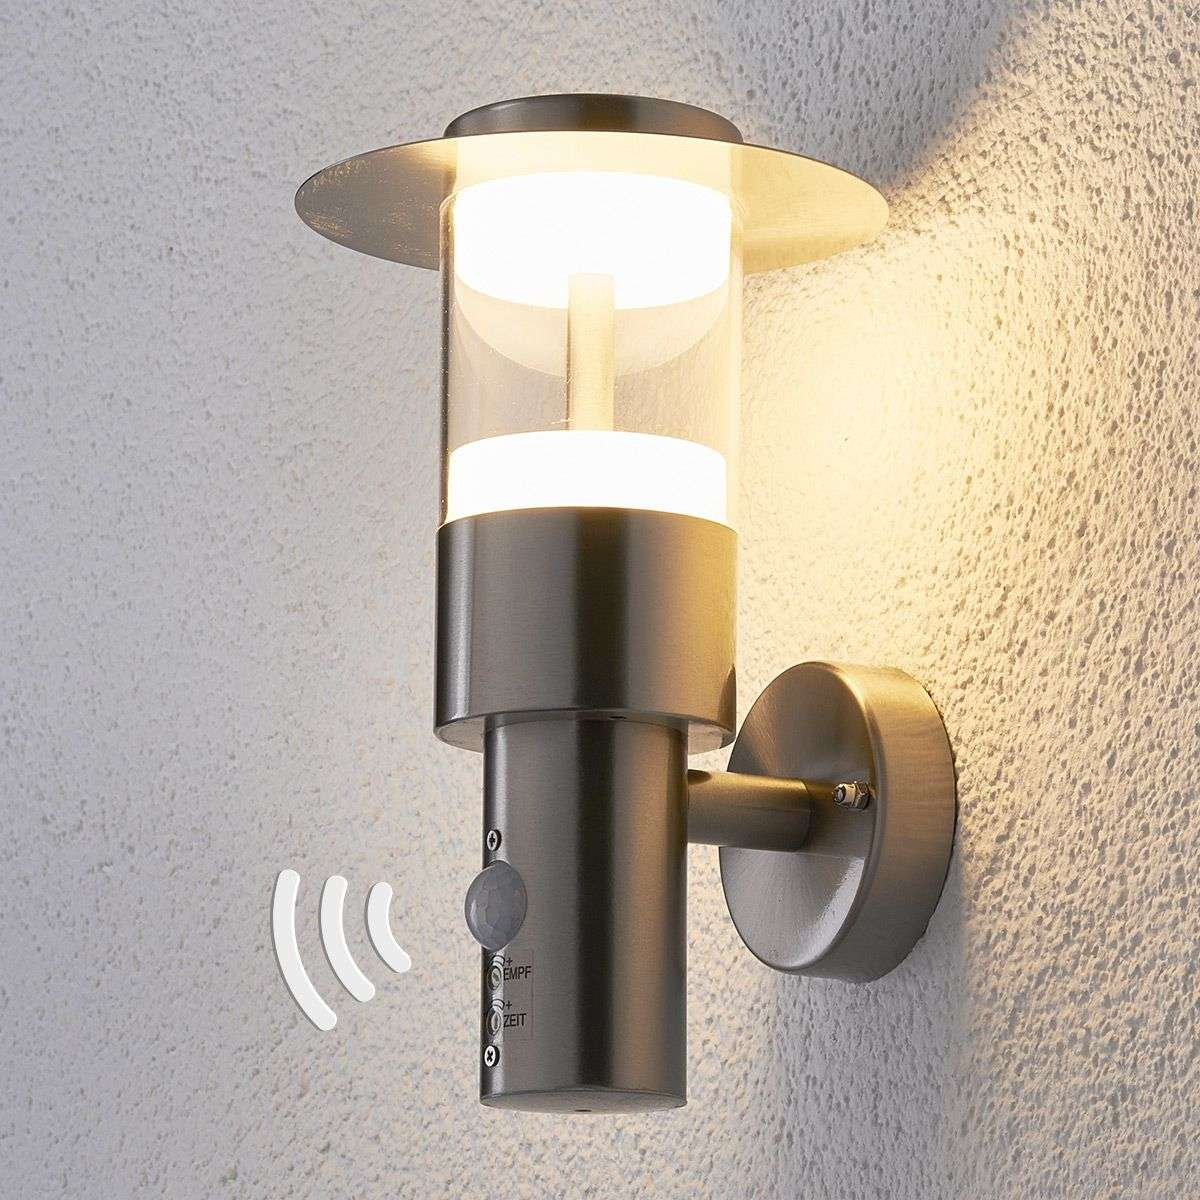 High Quality LED Presence Detector Outdoor Wall Light Anouk 9988030 31